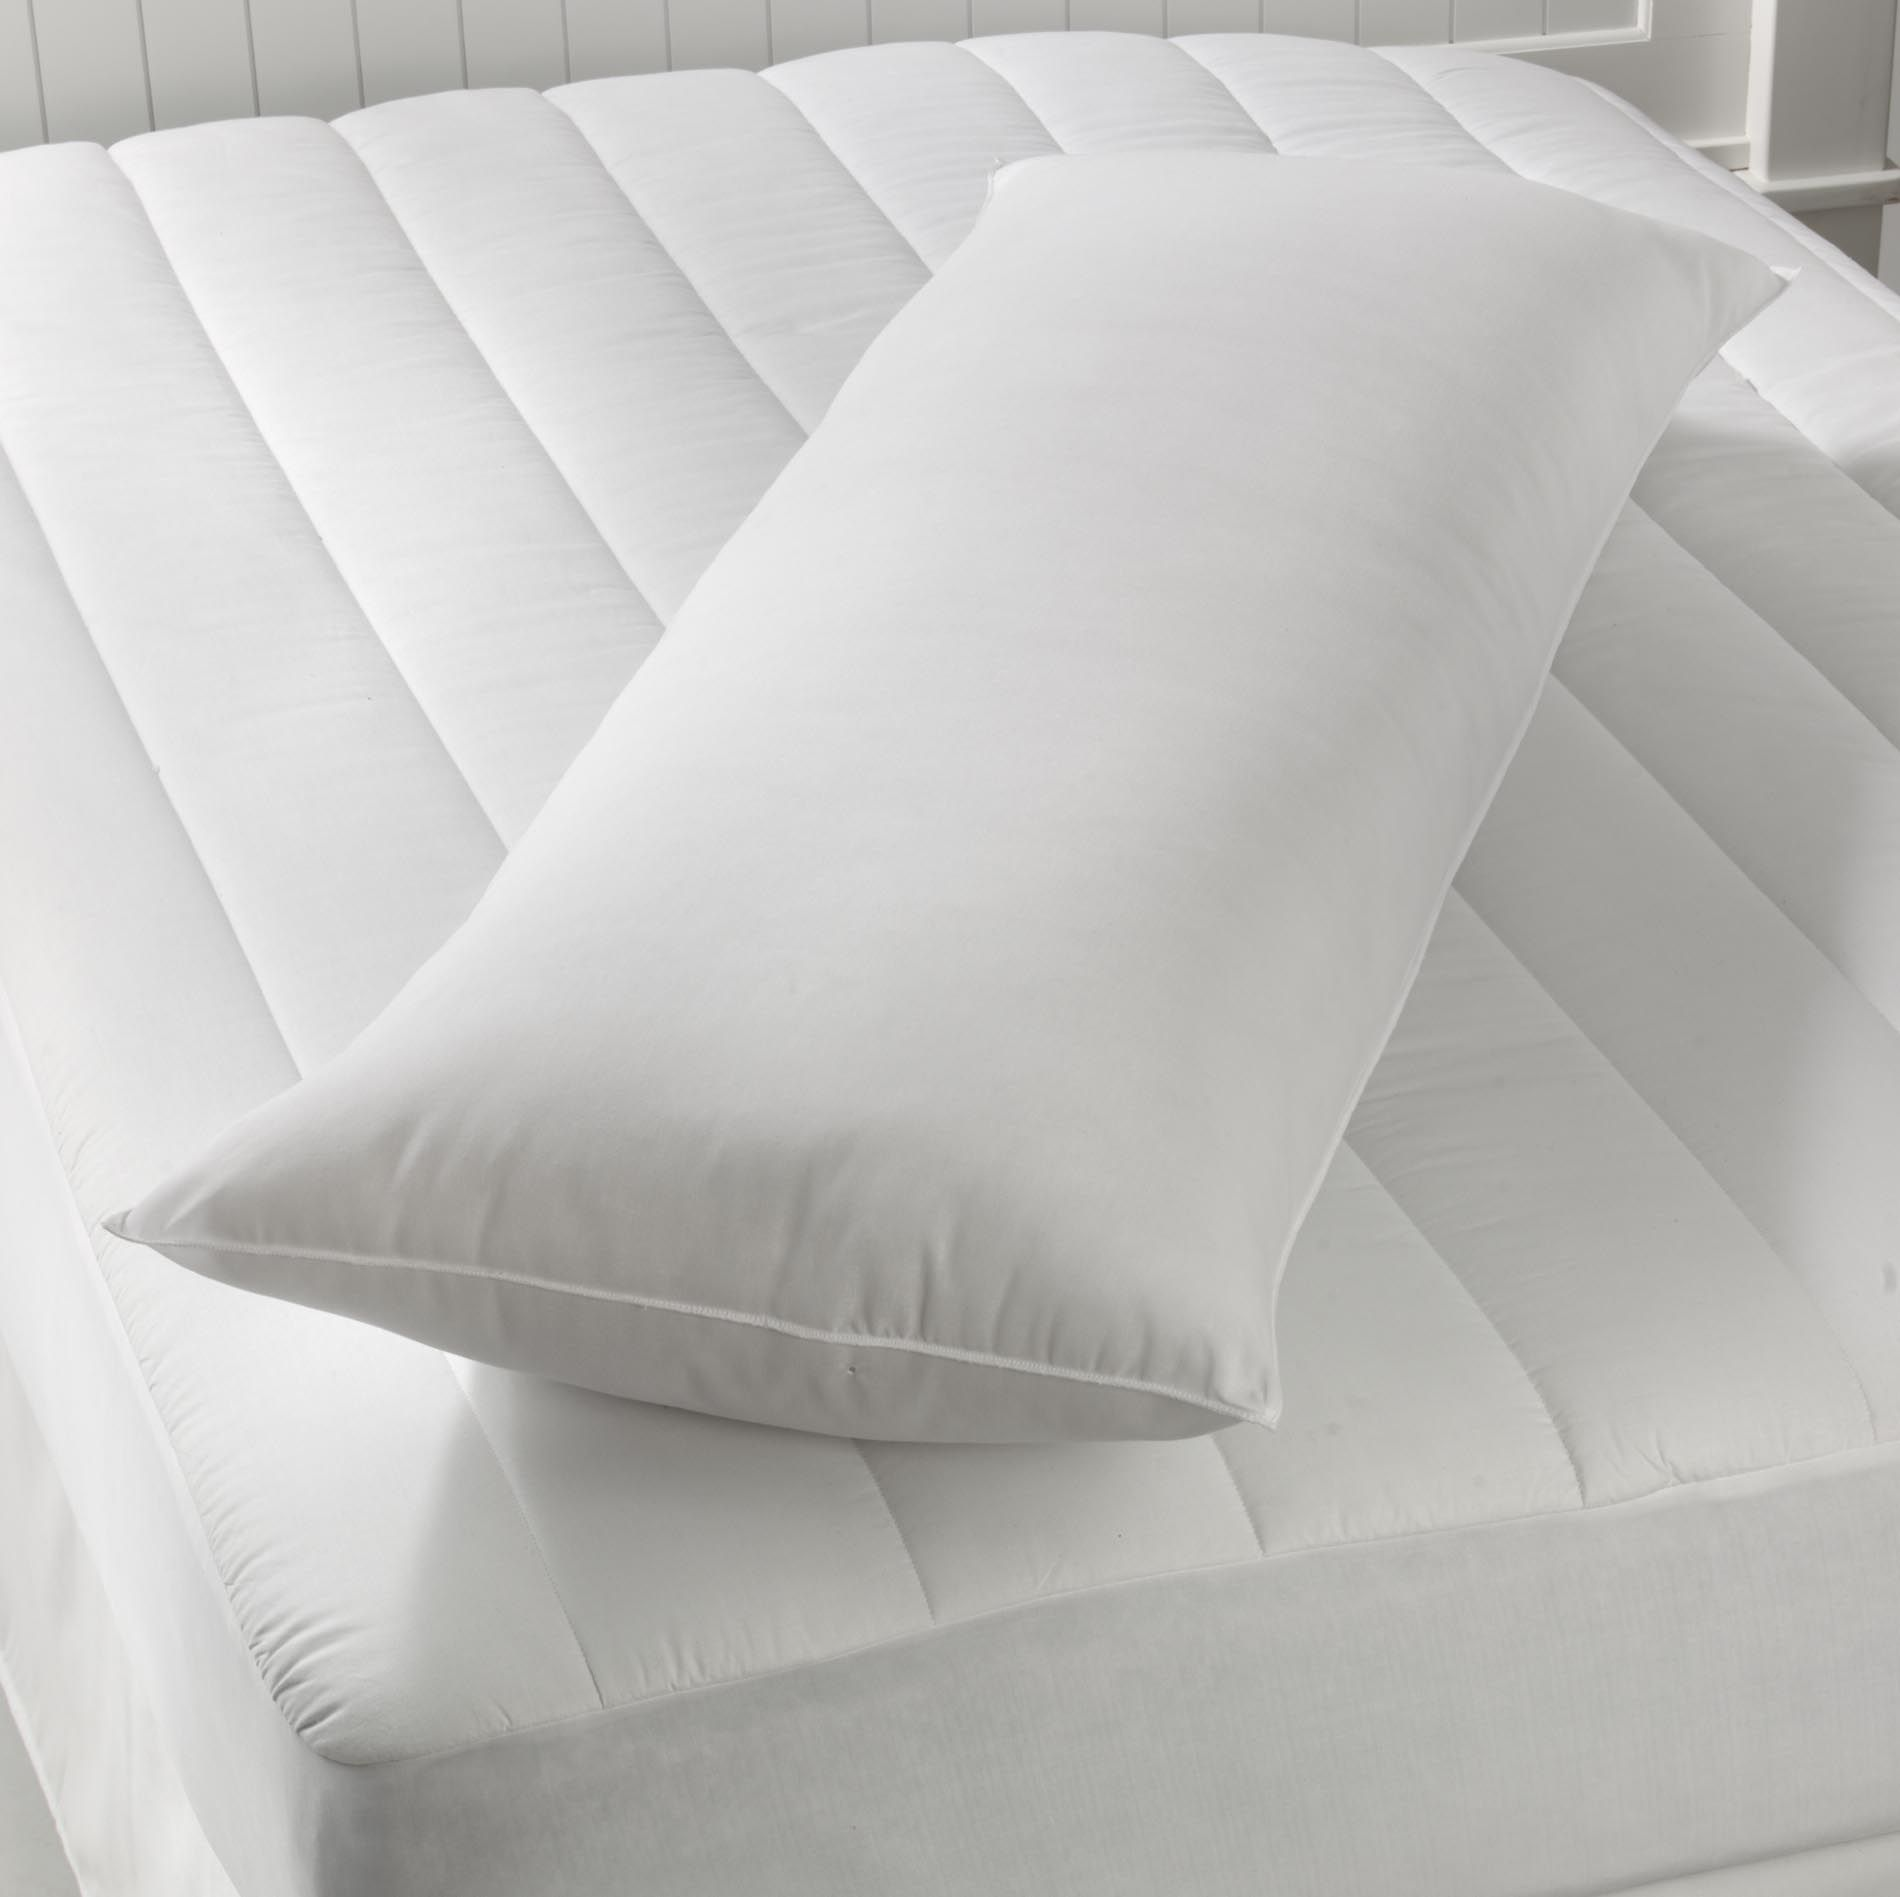 Colormate Body Pillow  White